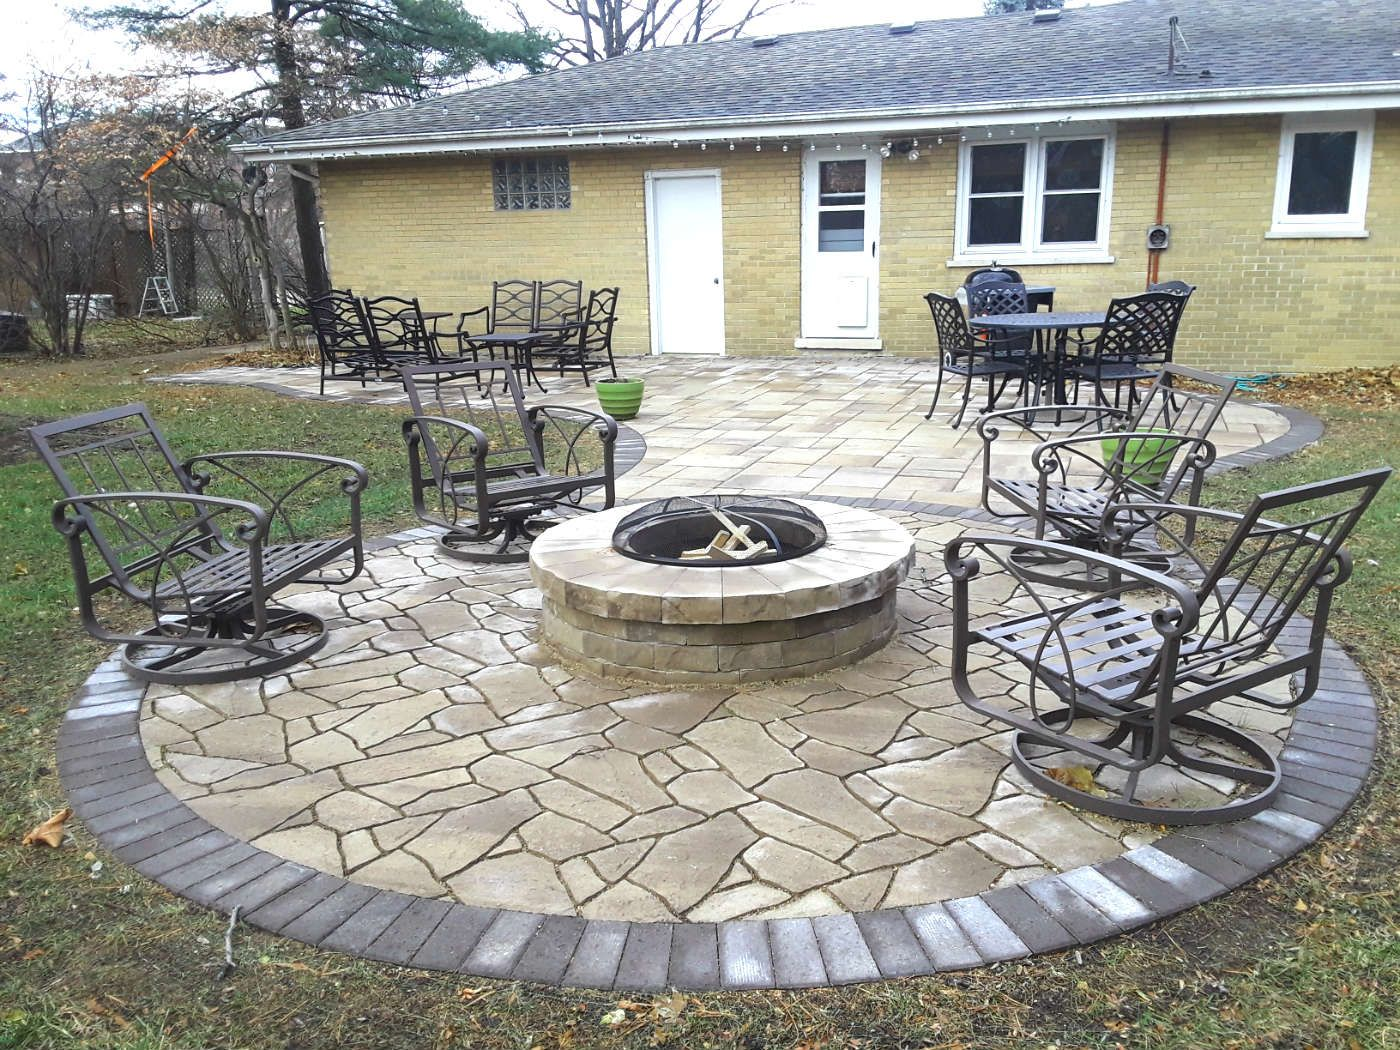 Belgard Paver Patio With Fire Pit Designed By Lombard Il Paver Patio Designer Patio Paver Patio Outdoor Patio Set